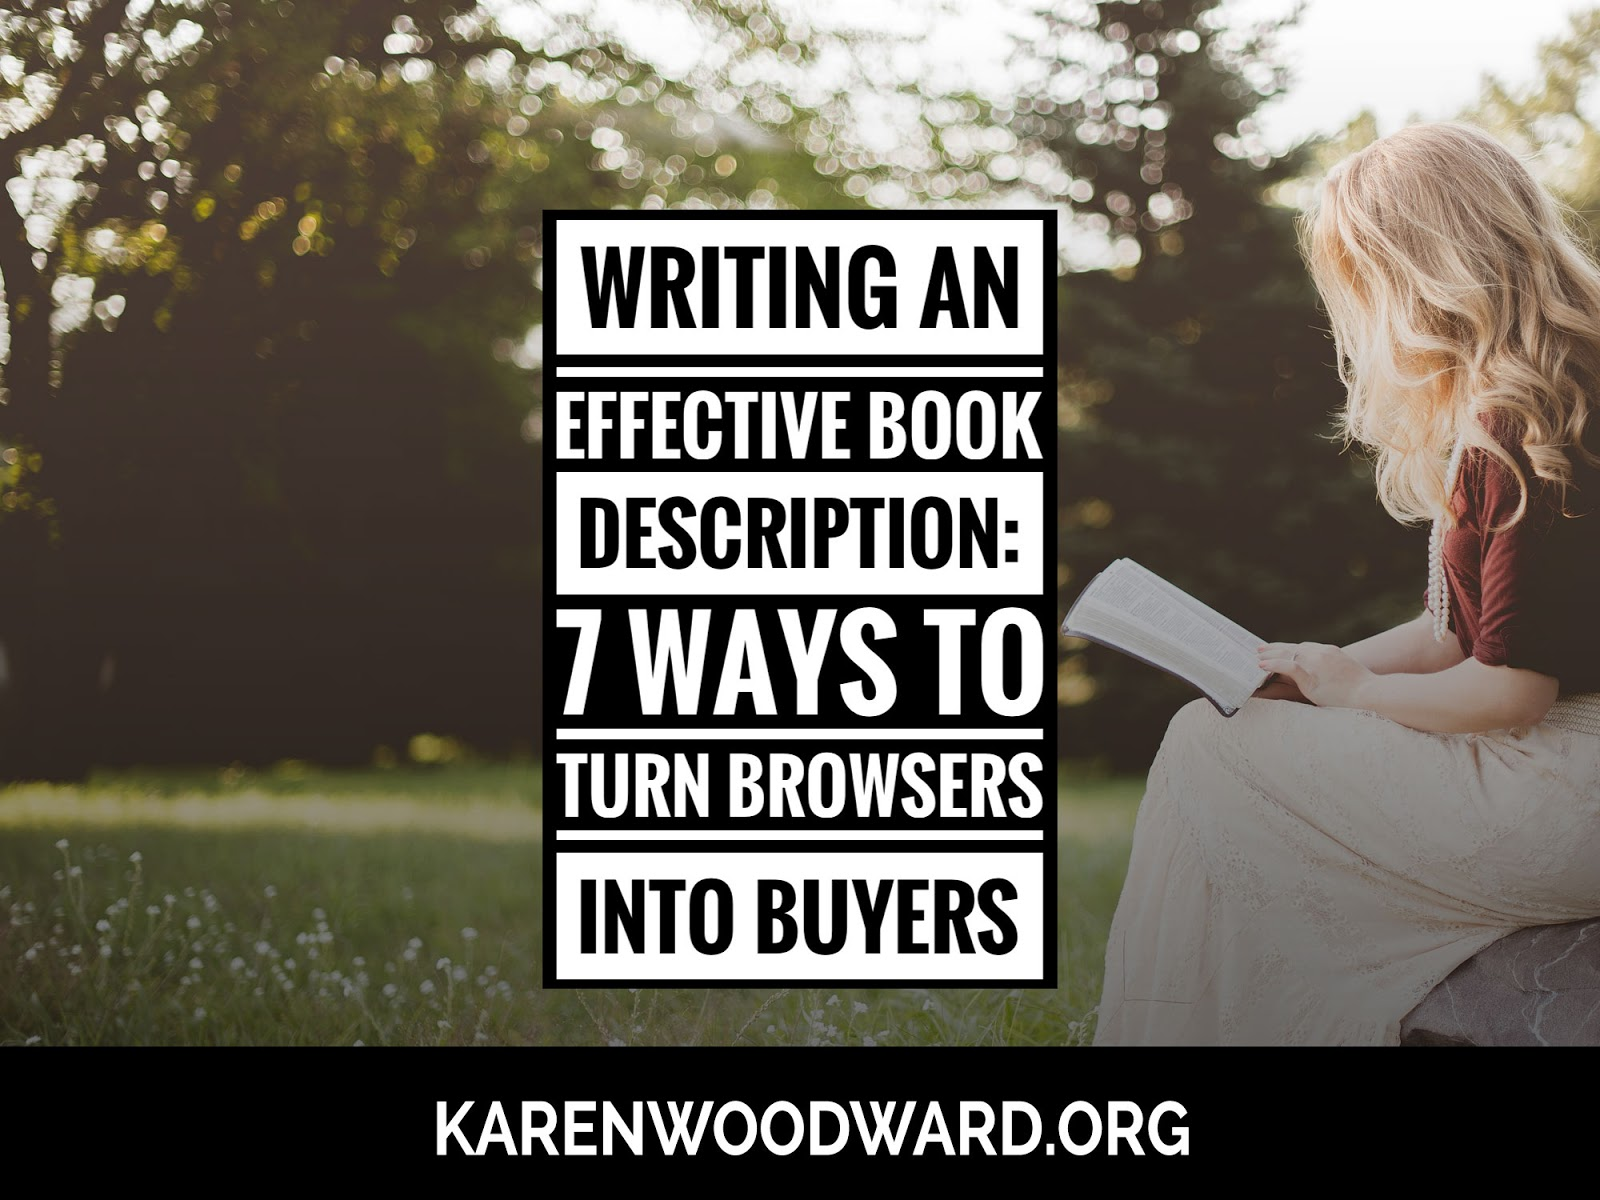 Karen Woodward Writing an Effective Book Description 7 Ways to Turn Browsers Into Buyers